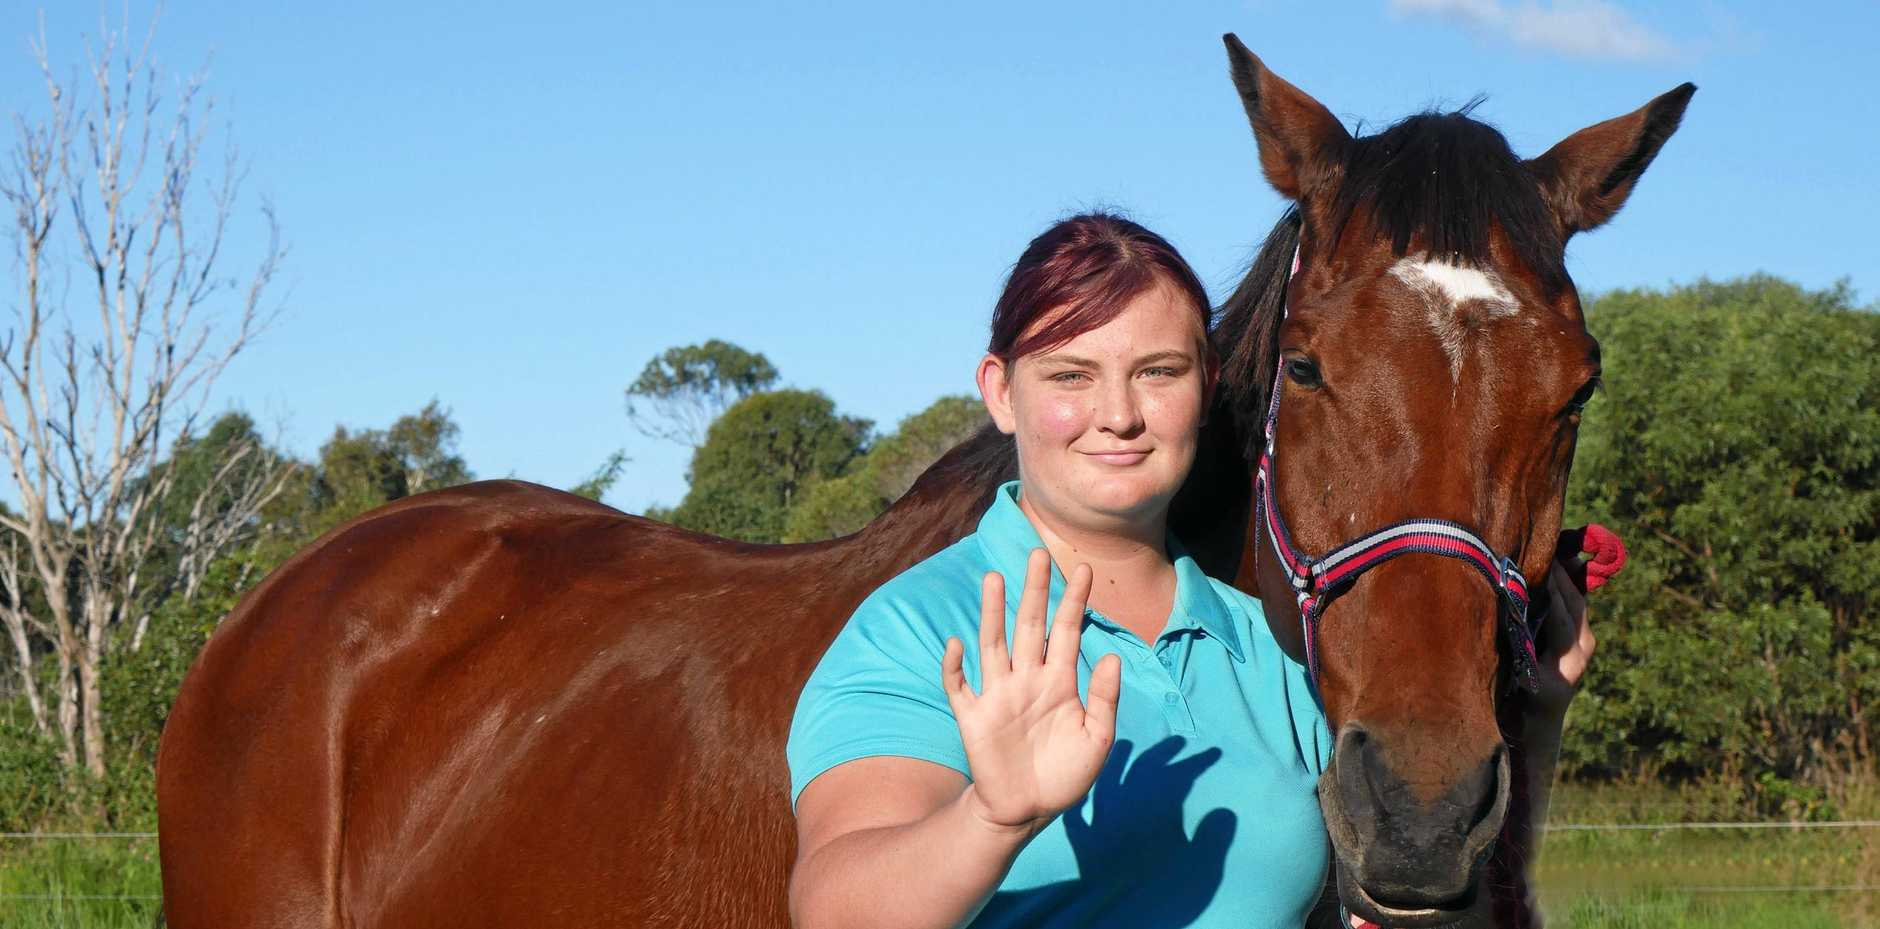 SLOW DOWN: Shamia Hill wants motorists to be aware of road rules regarding horses on roads. Pictured with horse Basil.